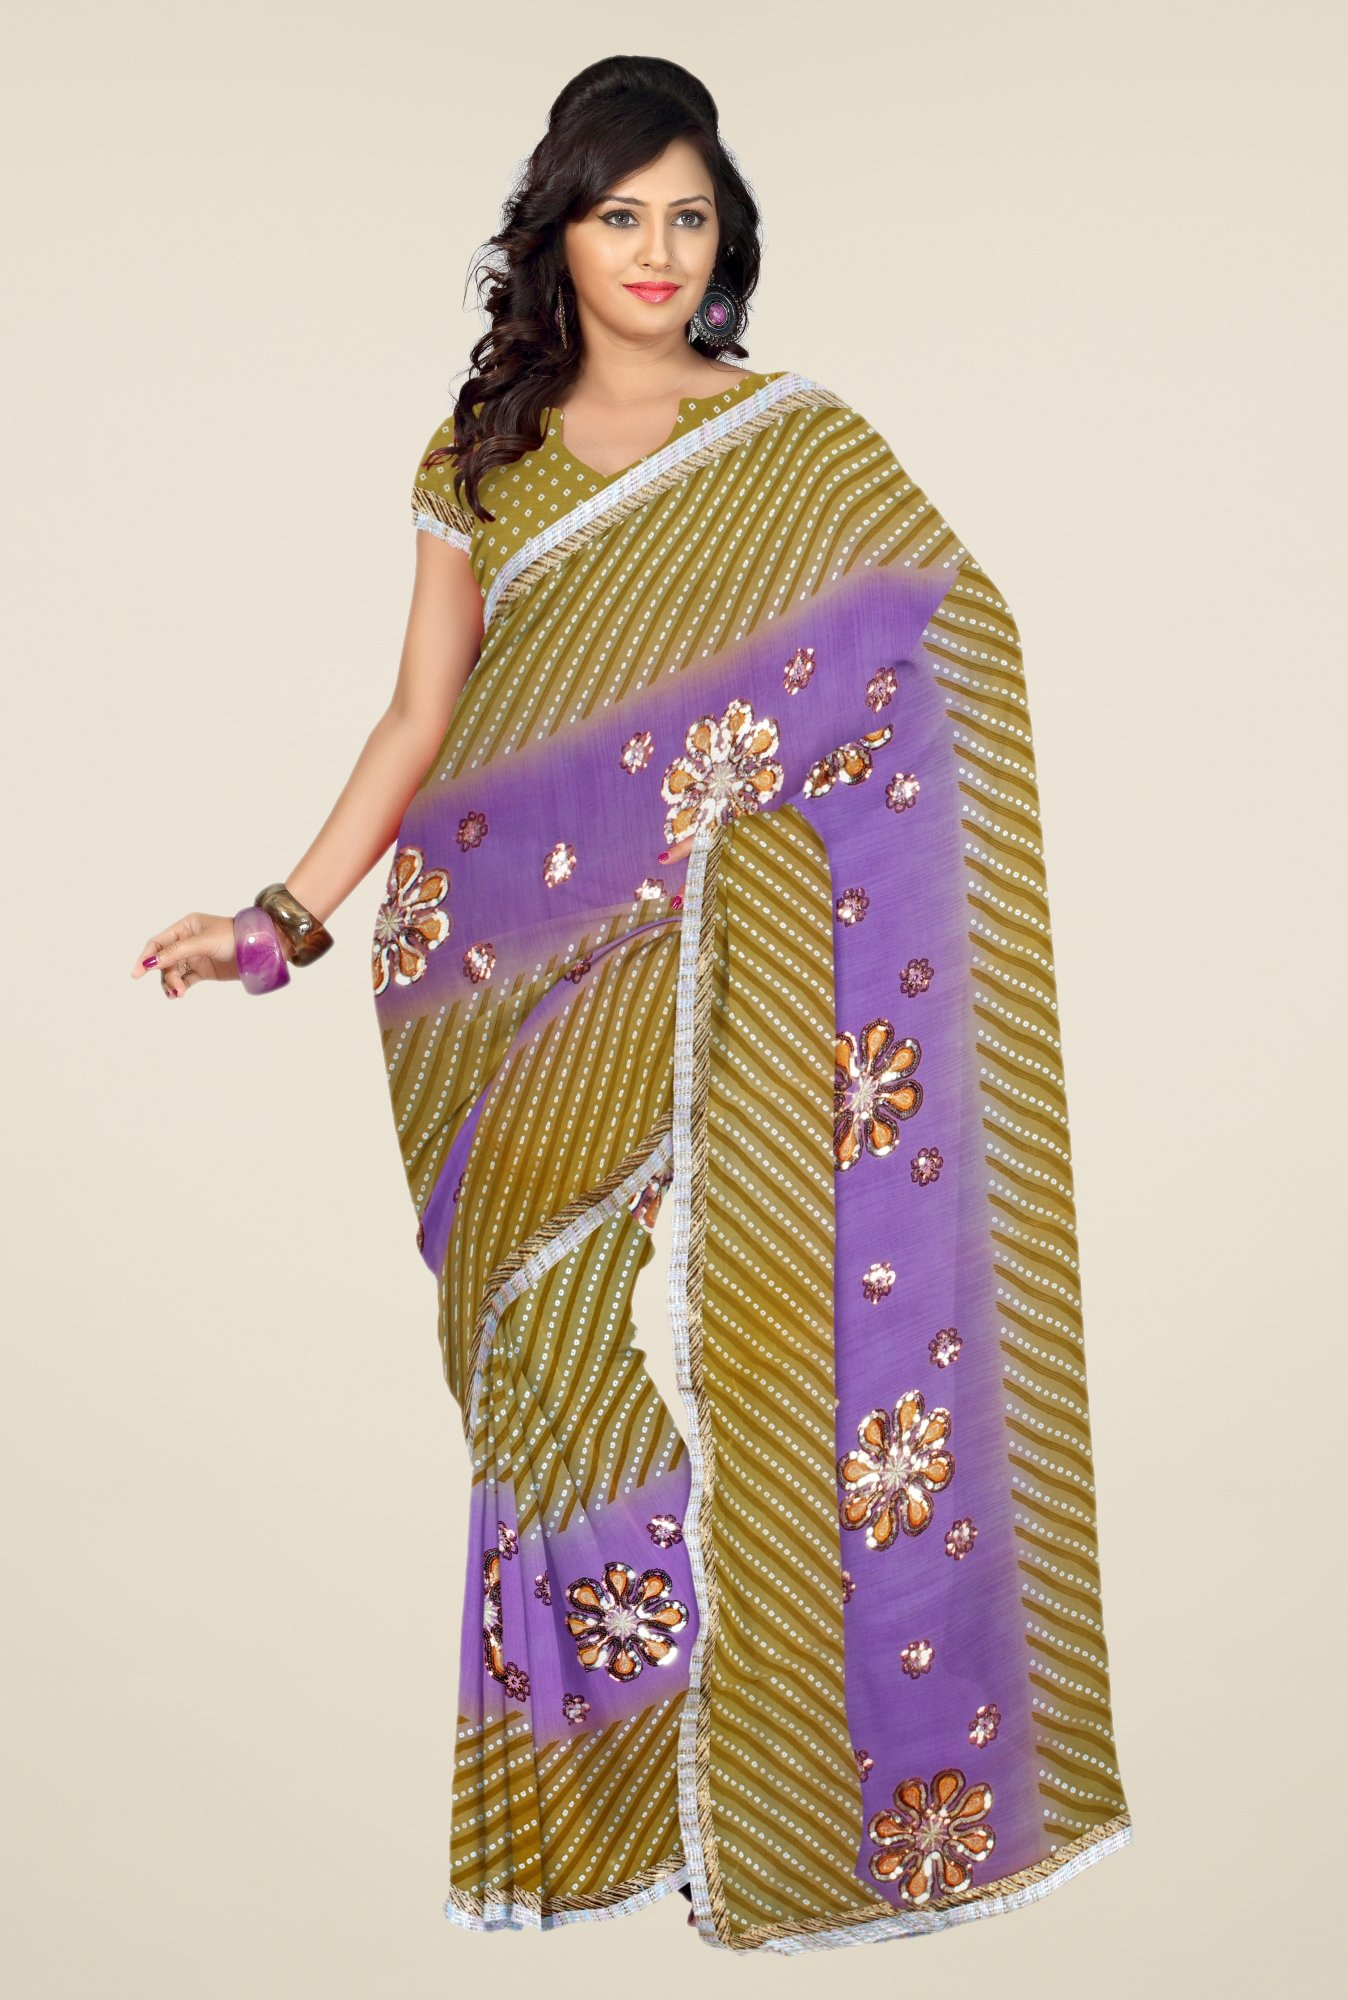 Triveni Olive & Purple Printed Faux Georgette Saree